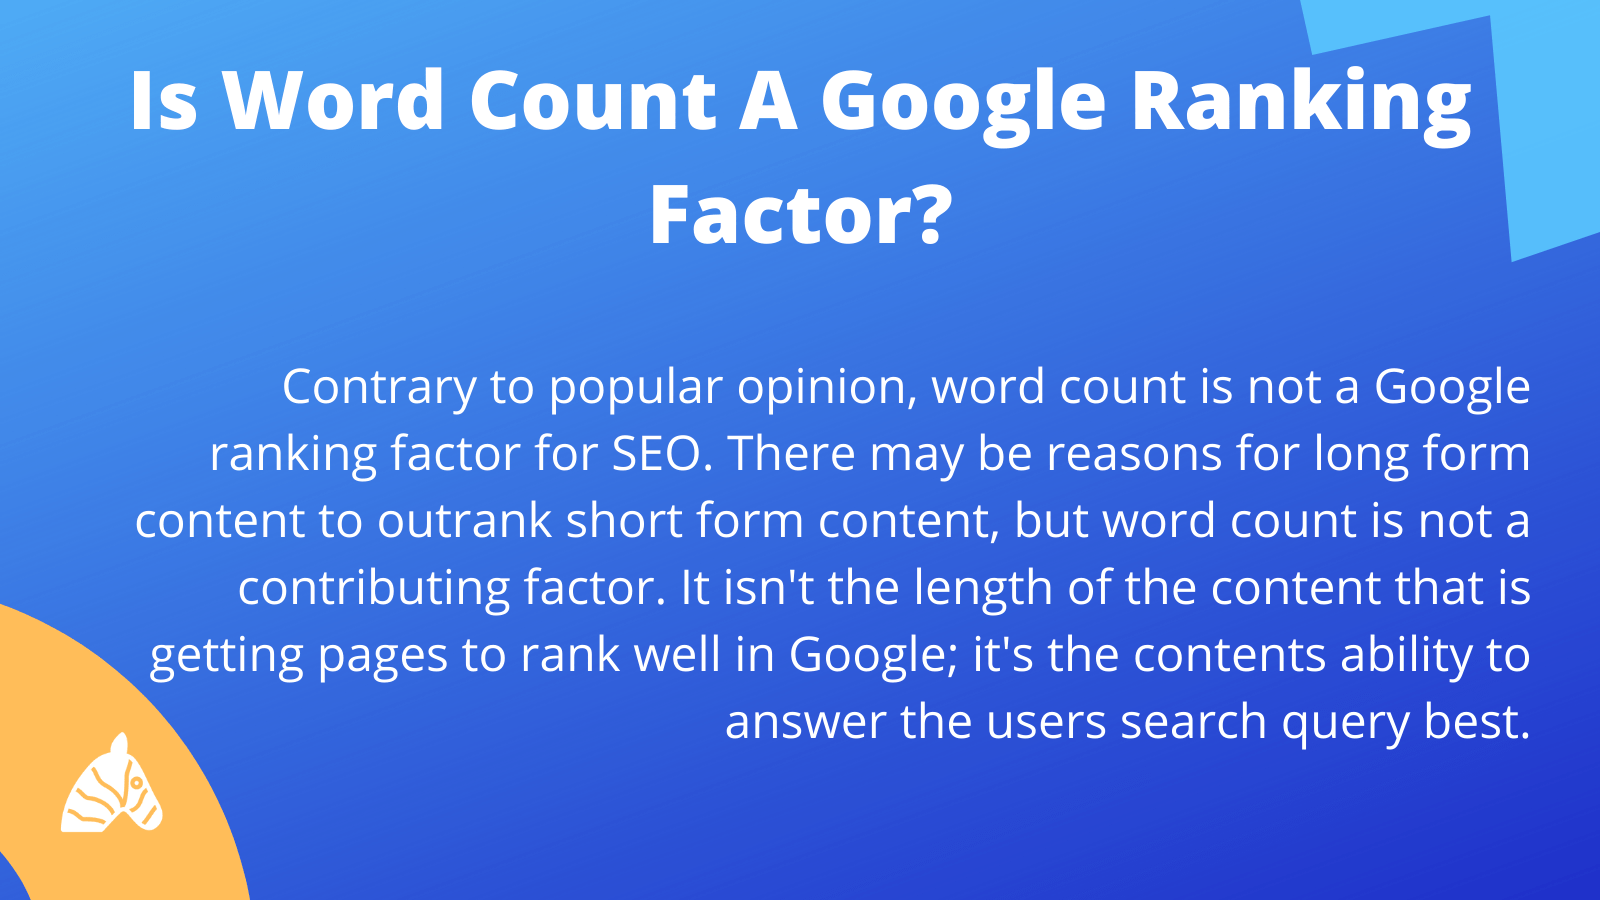 Is word count a Google ranking factor for SEO?